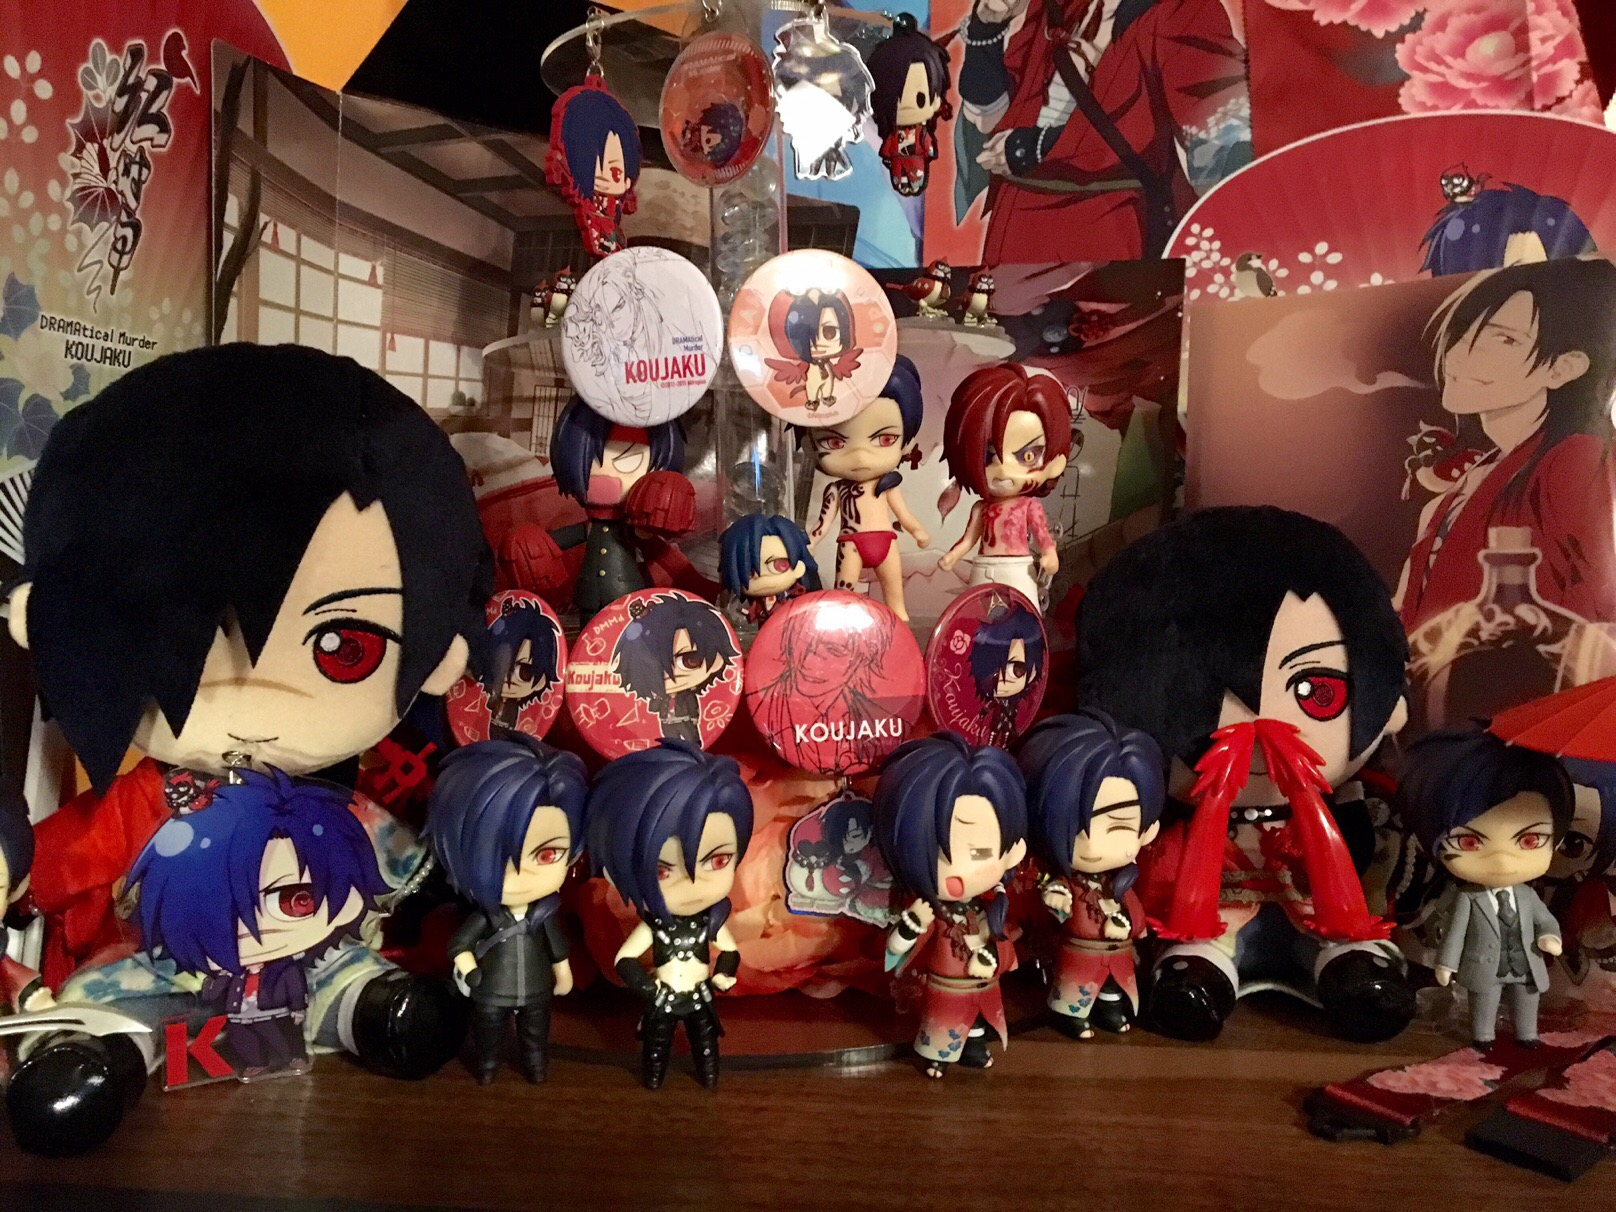 towel gift strap nendoroid bandai badge broccoli nitro+chiral tapestry nitroplus mini_towel clear_file nendoron toy's_planning rubber_strap media_factory multi-cloth empty d4_series keyholder paddle_fan plush_strap plush_strap_series nitro+chiral_plush_series neck_strap dramatical_murder koujaku yupon contents_seed honyarara dramatical_murder_re:connect dramatical_murder_rubber_key_ring_collection deka_keyholder dramatical_murder_capsule_rubber_mascot beni dramatical_murder_can_badge_collection water-in_collection dramatical_murder_water-in_collection dramatical_murder_trading_chimi_figure_collection dramatical_murder_can_badge_collection_kigurumi_ver. acrylic_keychain toytec_dtc orange_rouge nitro+chiral_special_kuji animate_girls_festival_2014 dramatical_murder_in_space_caiman dramatical_murder_can_badge_collection_2 nitro+_chiral_can_badge_collection_3_trump_ver.